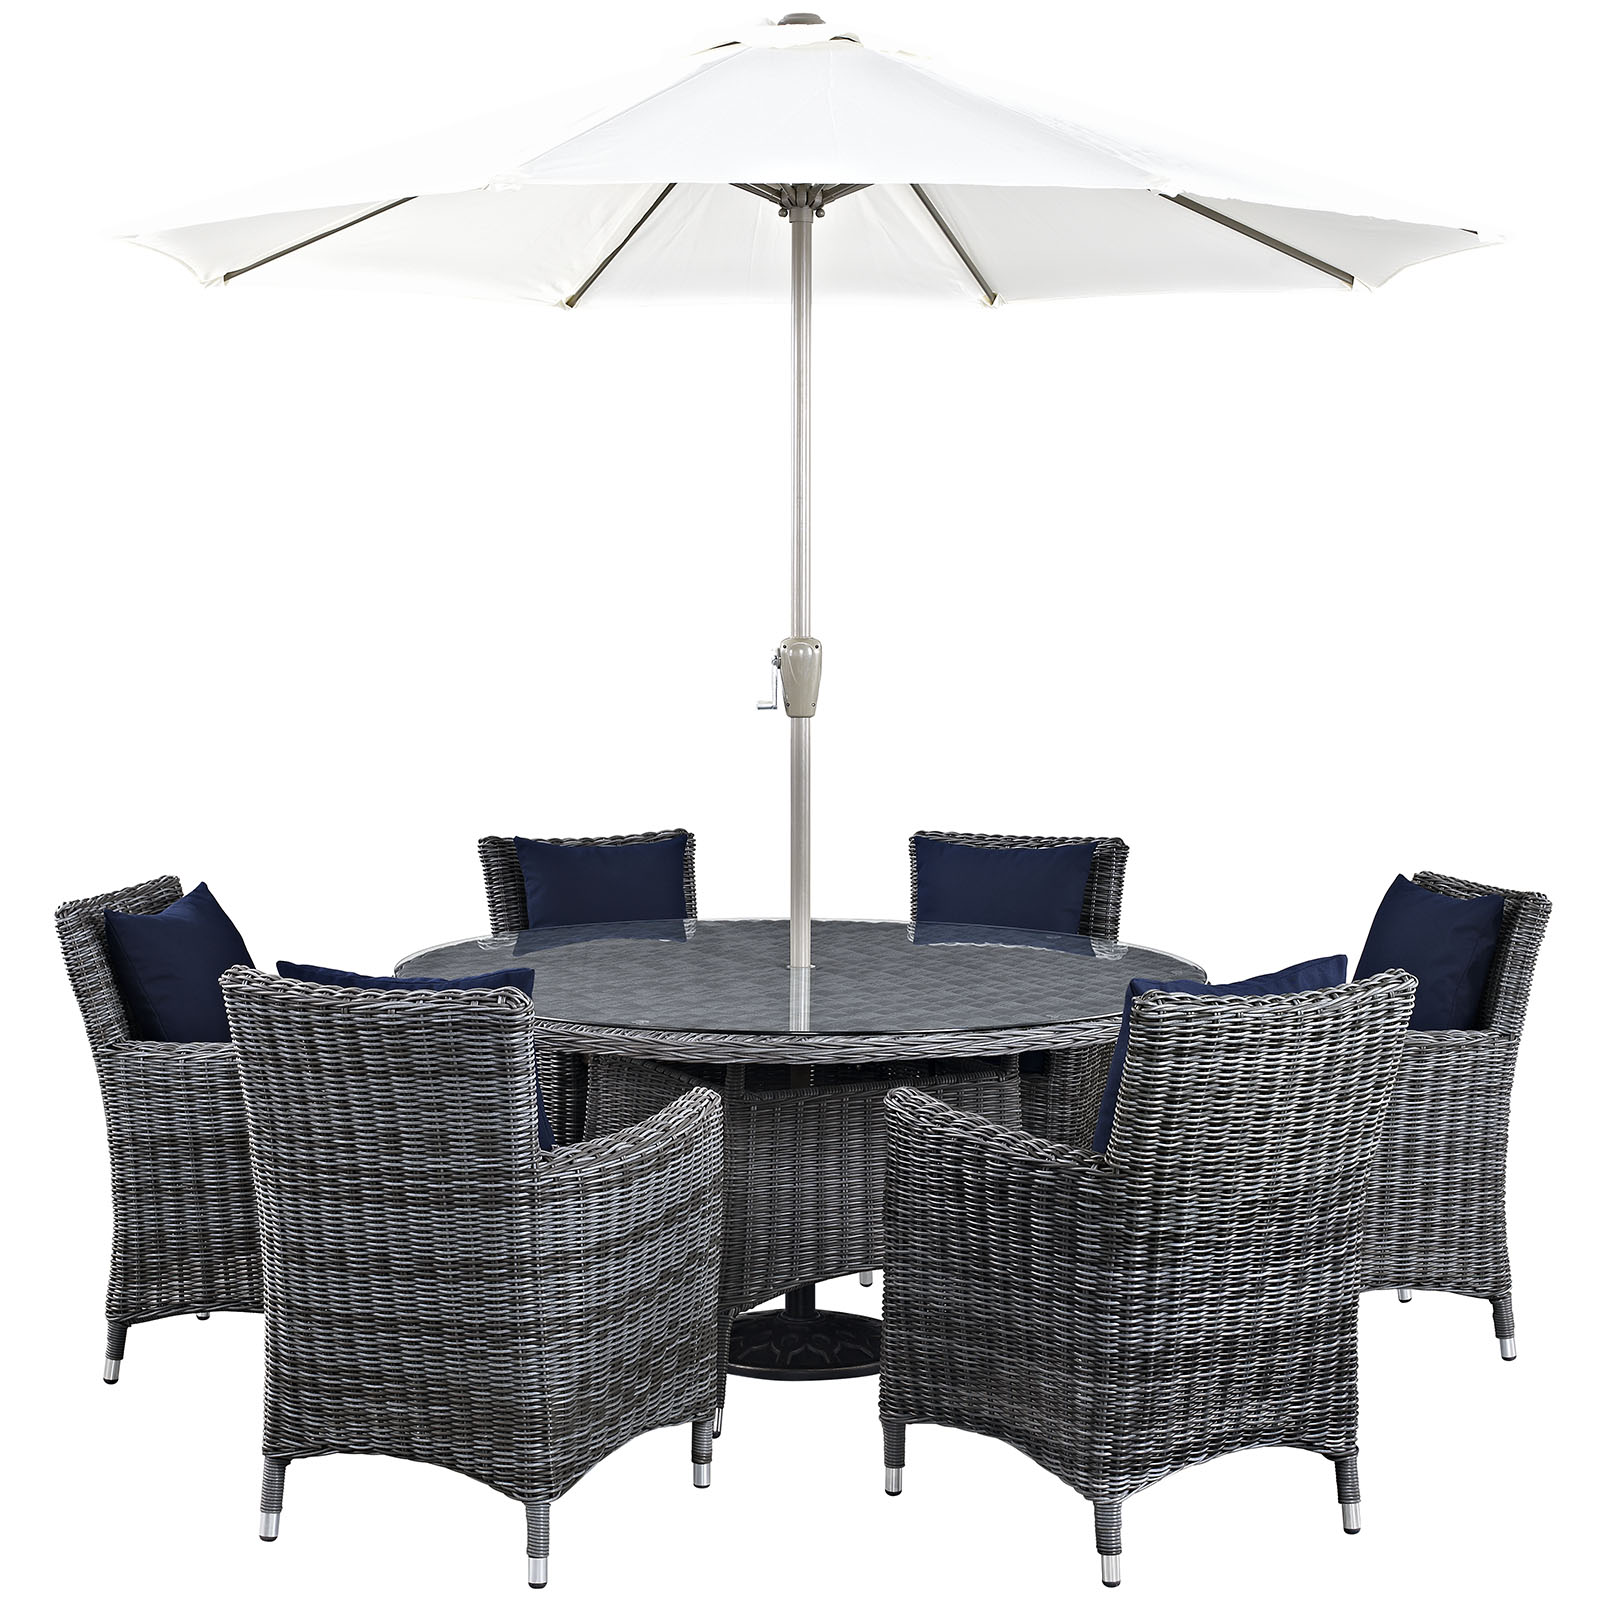 Modern Contemporary Urban Design Outdoor Patio Balcony Eight PCS Dining Chairs and Table Set, Navy Blue, Rattan